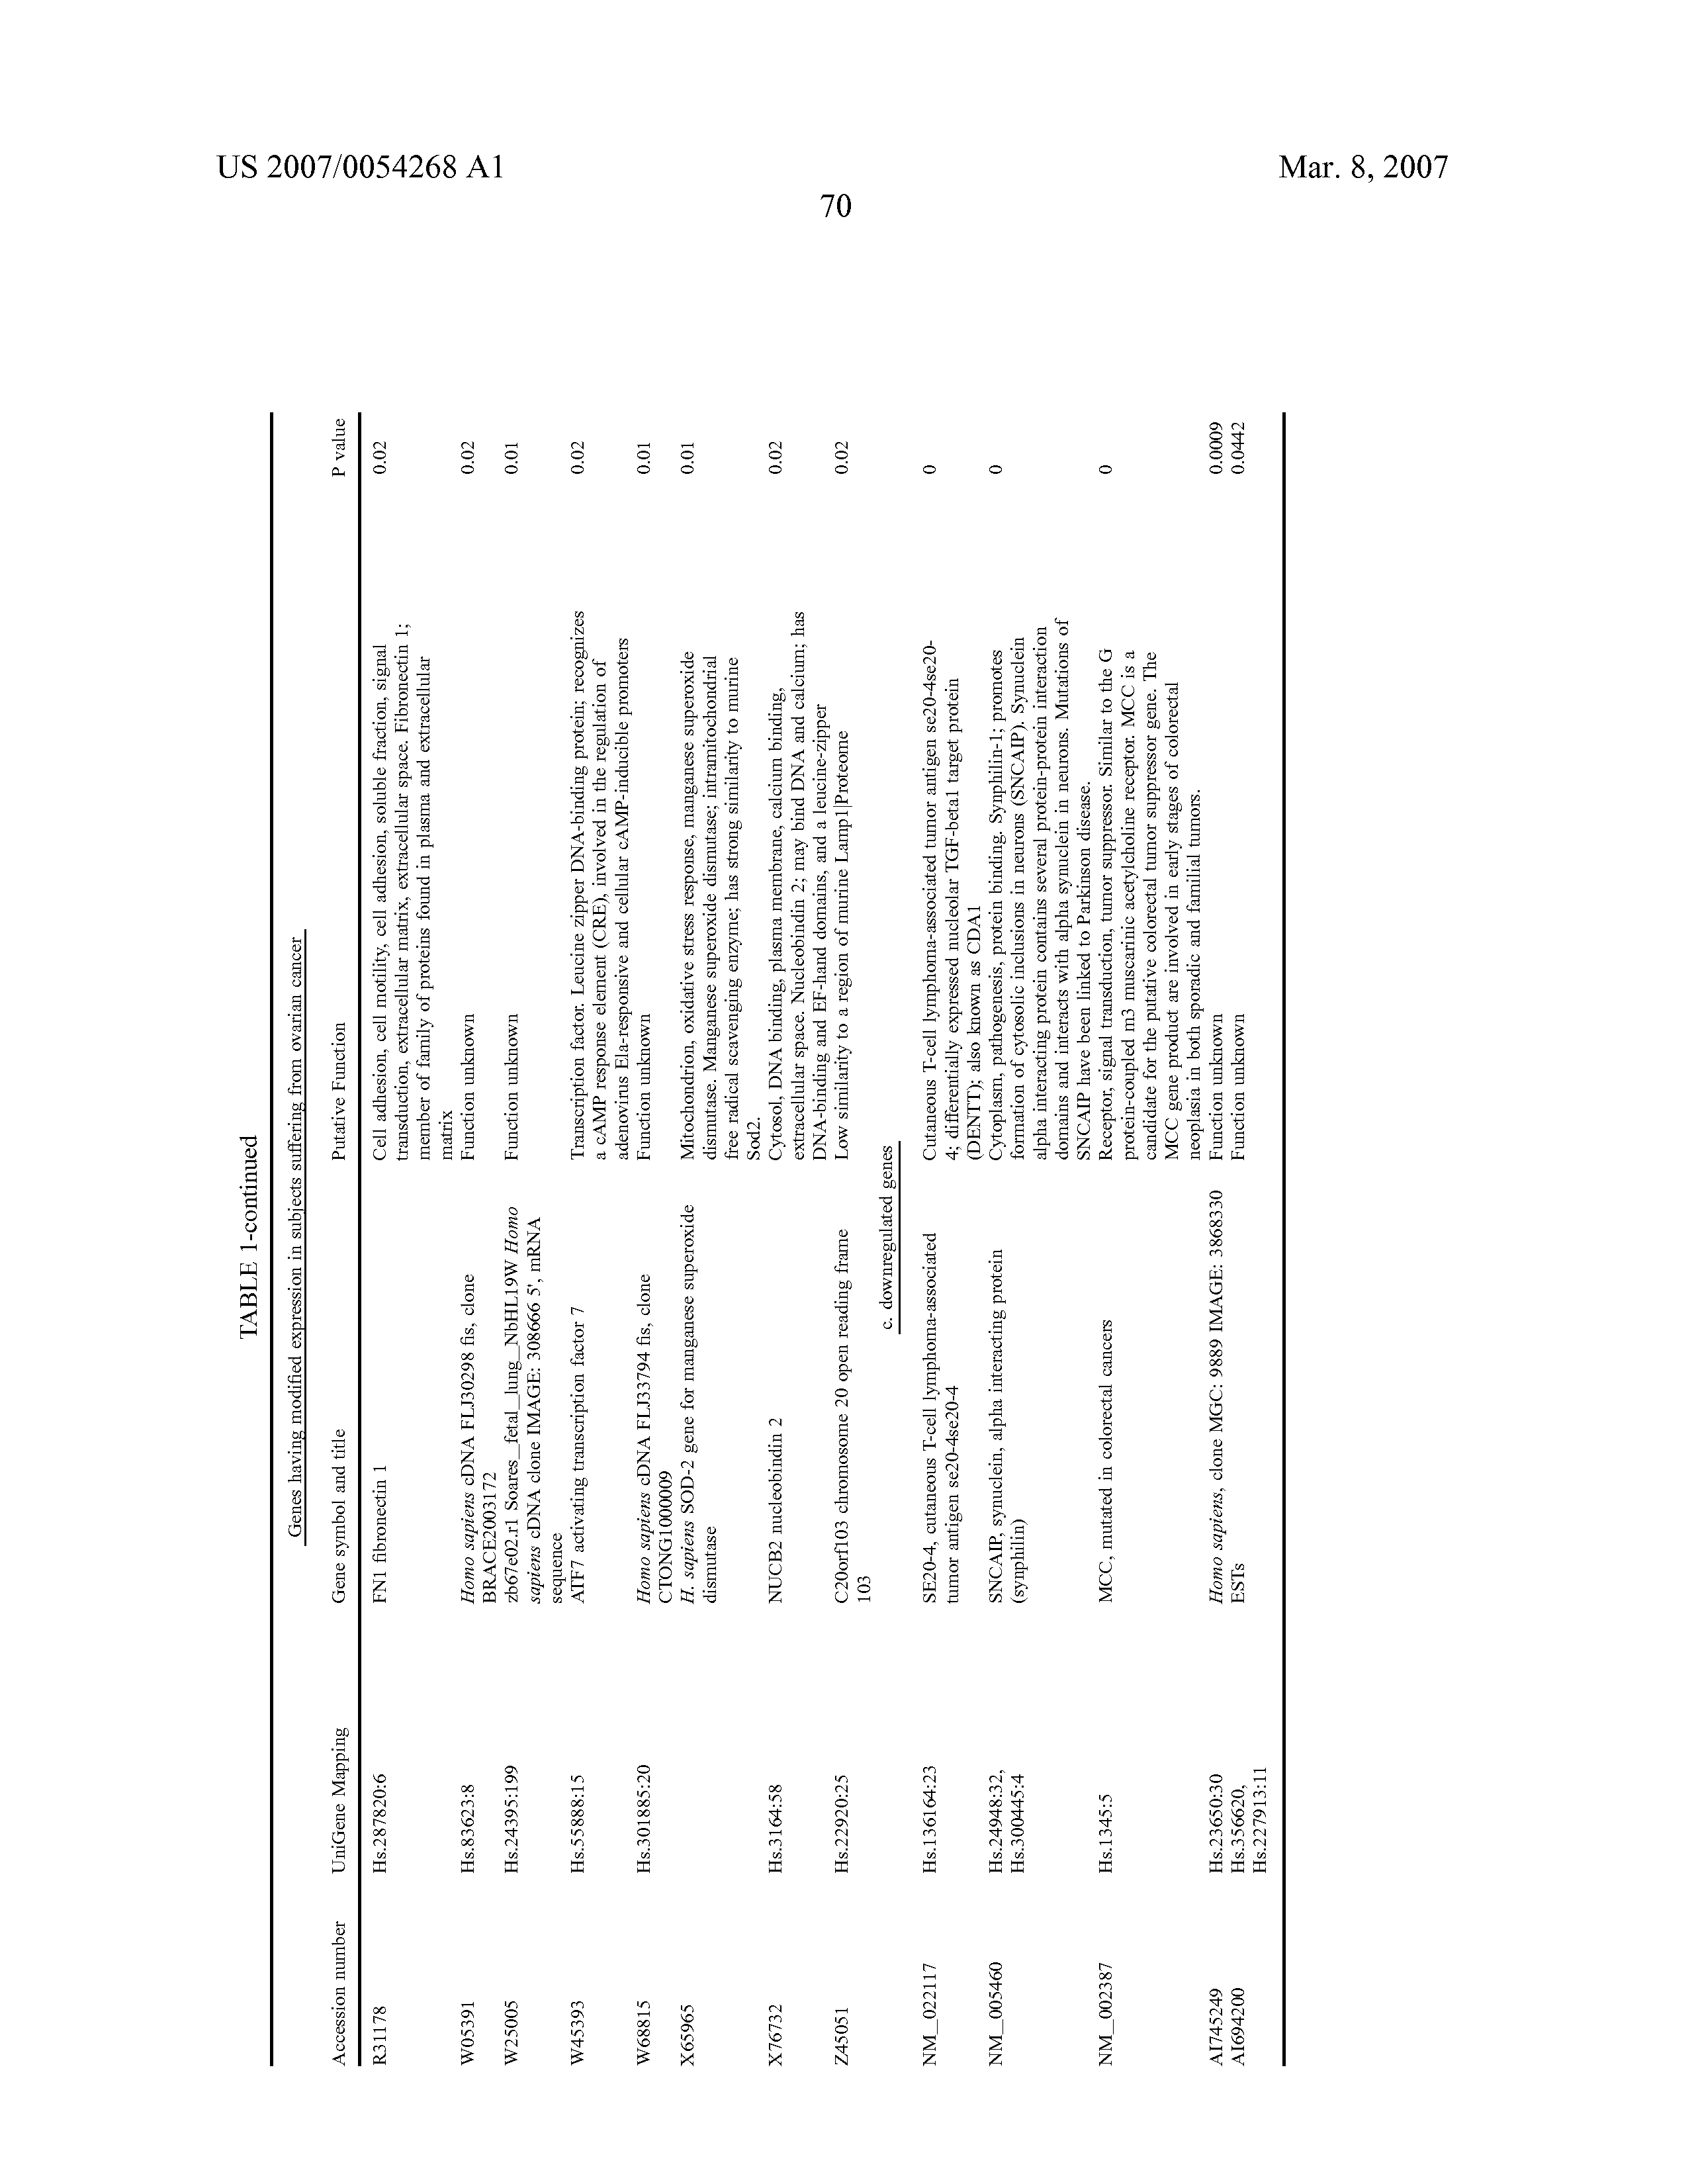 US 2007/0054268 A1 - Methods Of Diagnosis And Prognosis Of